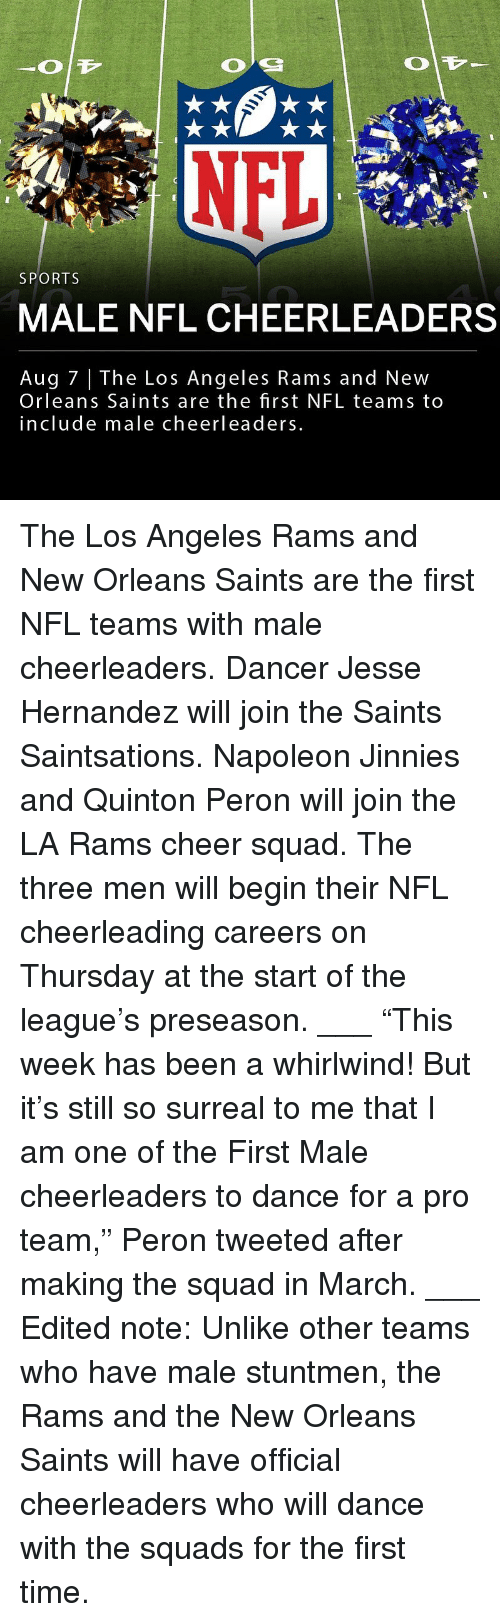 "Los Angeles Rams, Memes, and Nfl: SPORTS  MALE NFL CHEERLEADERS  Aug 7 | The Los Angeles Rams and New  Orleans Saints are the first NFL teams to  include male cheerleaders The Los Angeles Rams and New Orleans Saints are the first NFL teams with male cheerleaders. Dancer Jesse Hernandez will join the Saints Saintsations. Napoleon Jinnies and Quinton Peron will join the LA Rams cheer squad. The three men will begin their NFL cheerleading careers on Thursday at the start of the league's preseason. ___ ""This week has been a whirlwind! But it's still so surreal to me that I am one of the First Male cheerleaders to dance for a pro team,"" Peron tweeted after making the squad in March. ___ Edited note: Unlike other teams who have male stuntmen, the Rams and the New Orleans Saints will have official cheerleaders who will dance with the squads for the first time."